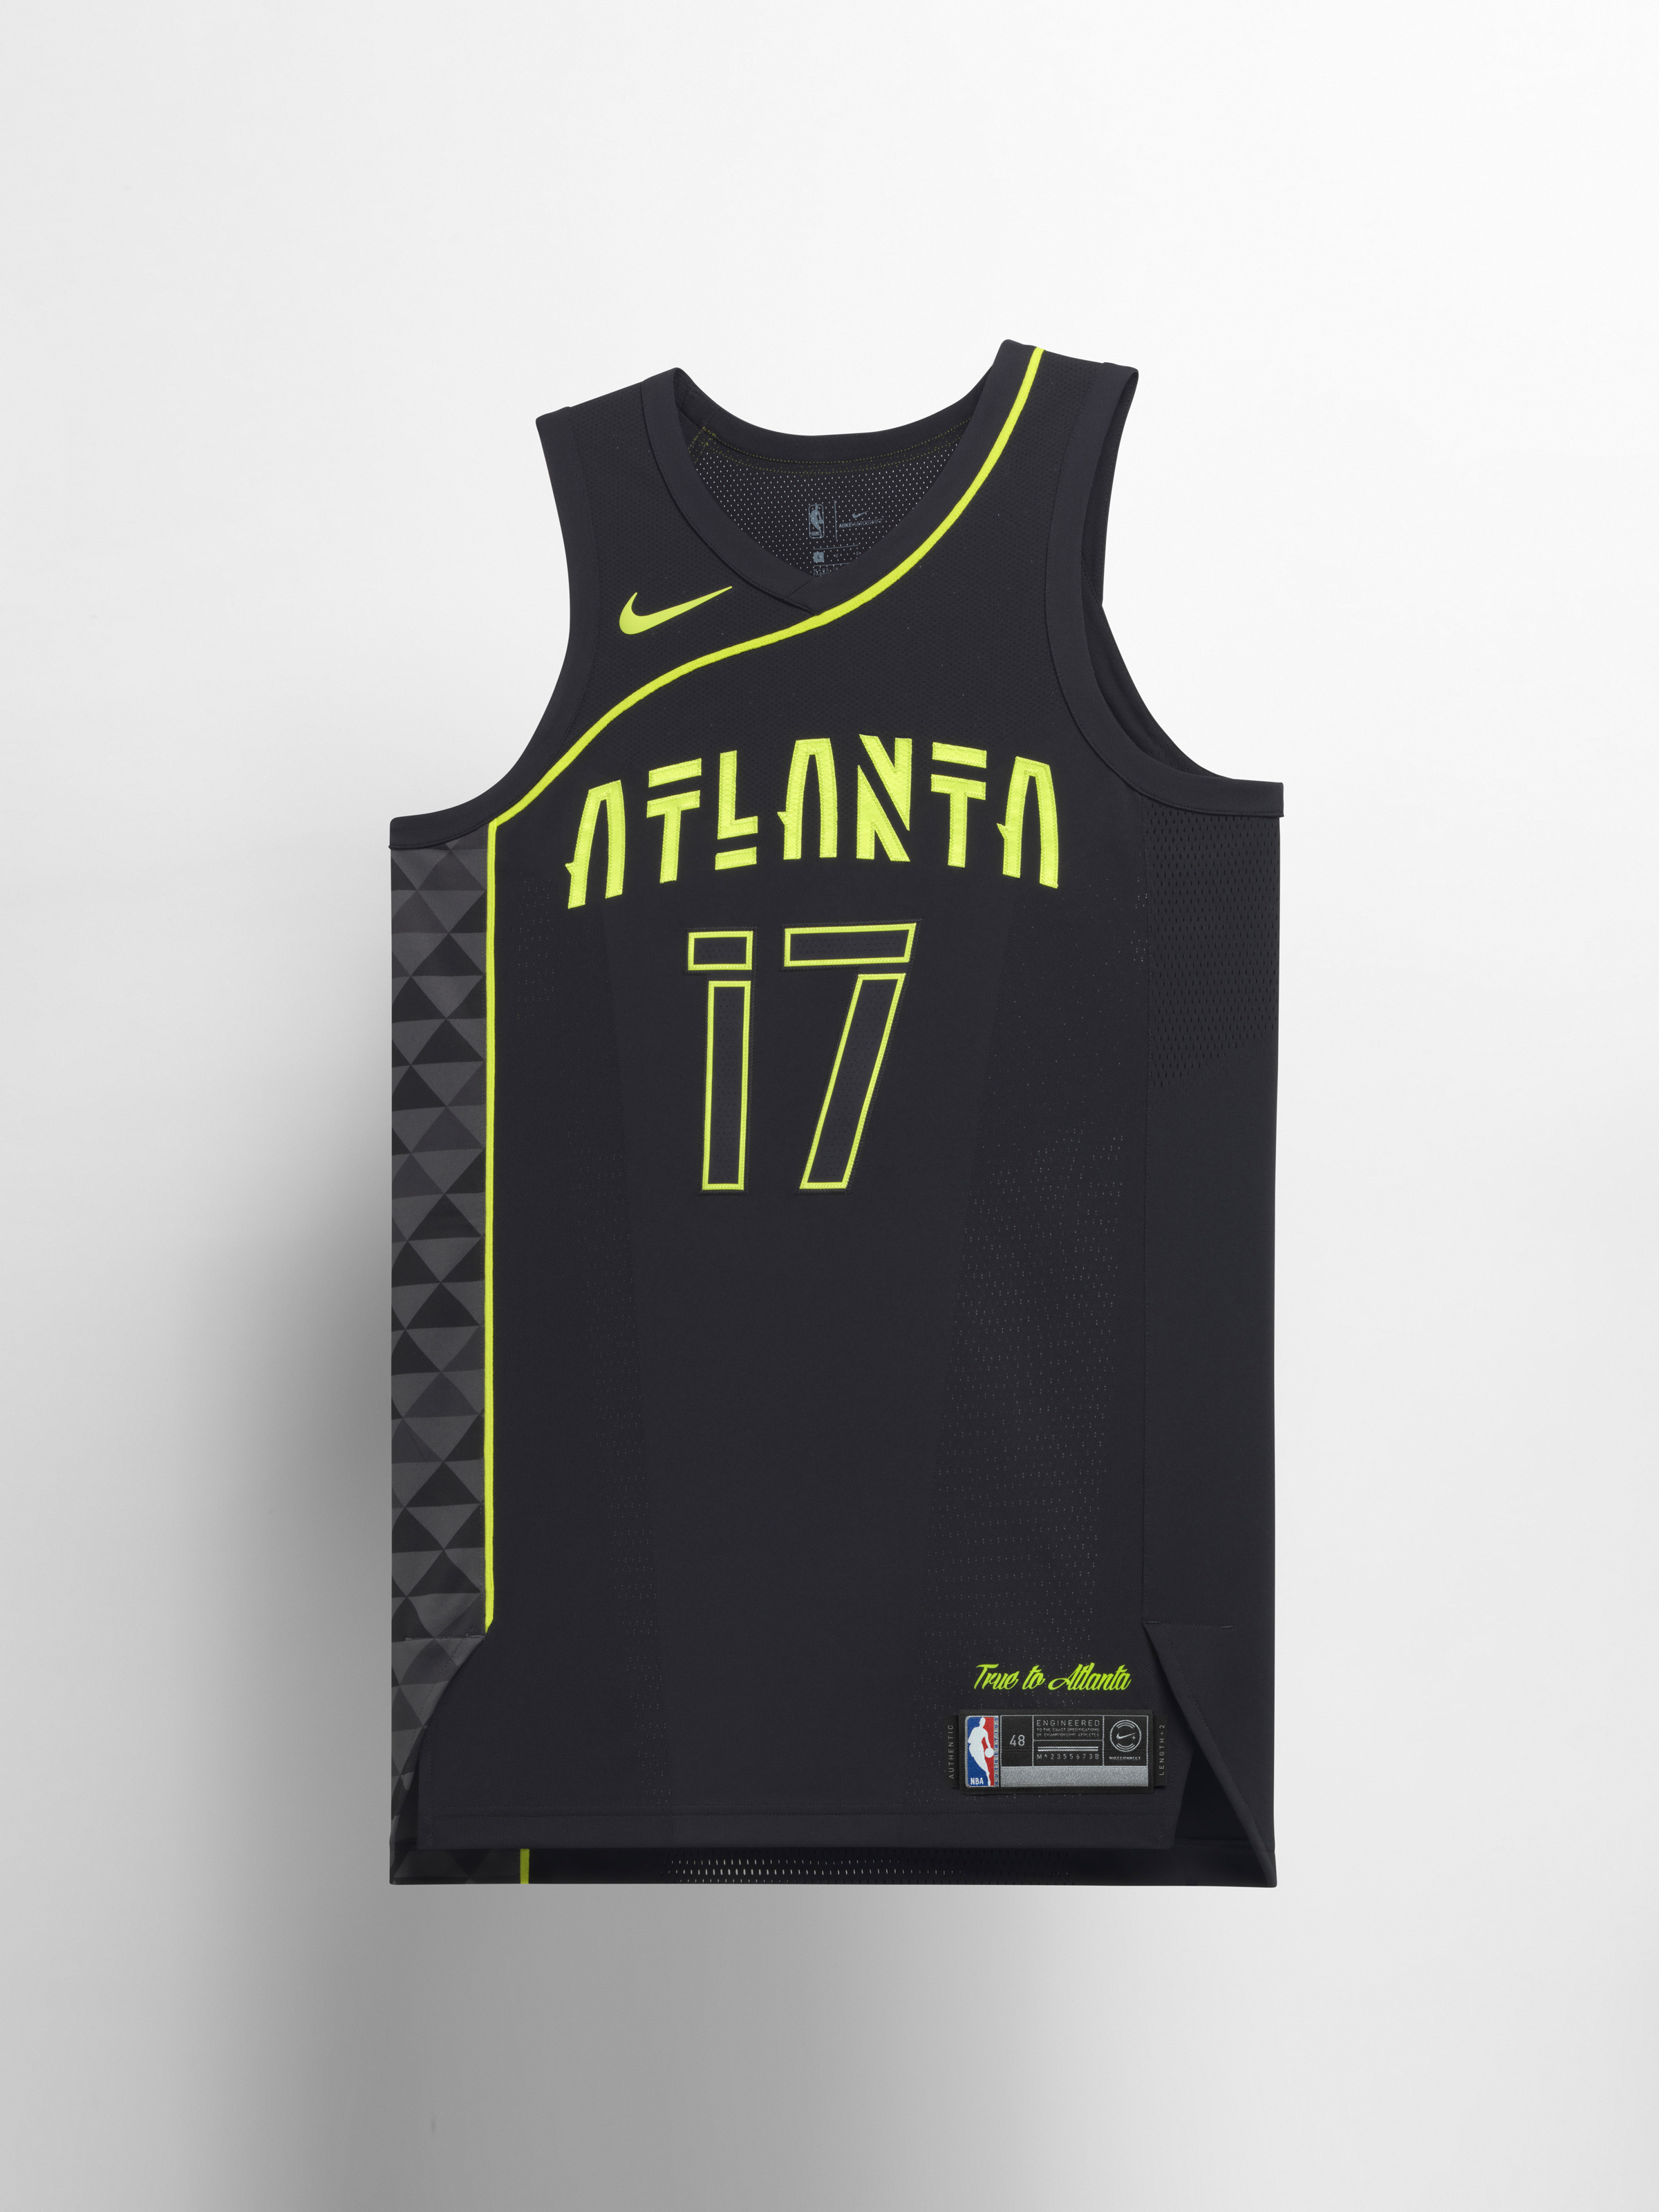 0acf6194f Nike unveils City Edition uniforms for 26 NBA teams